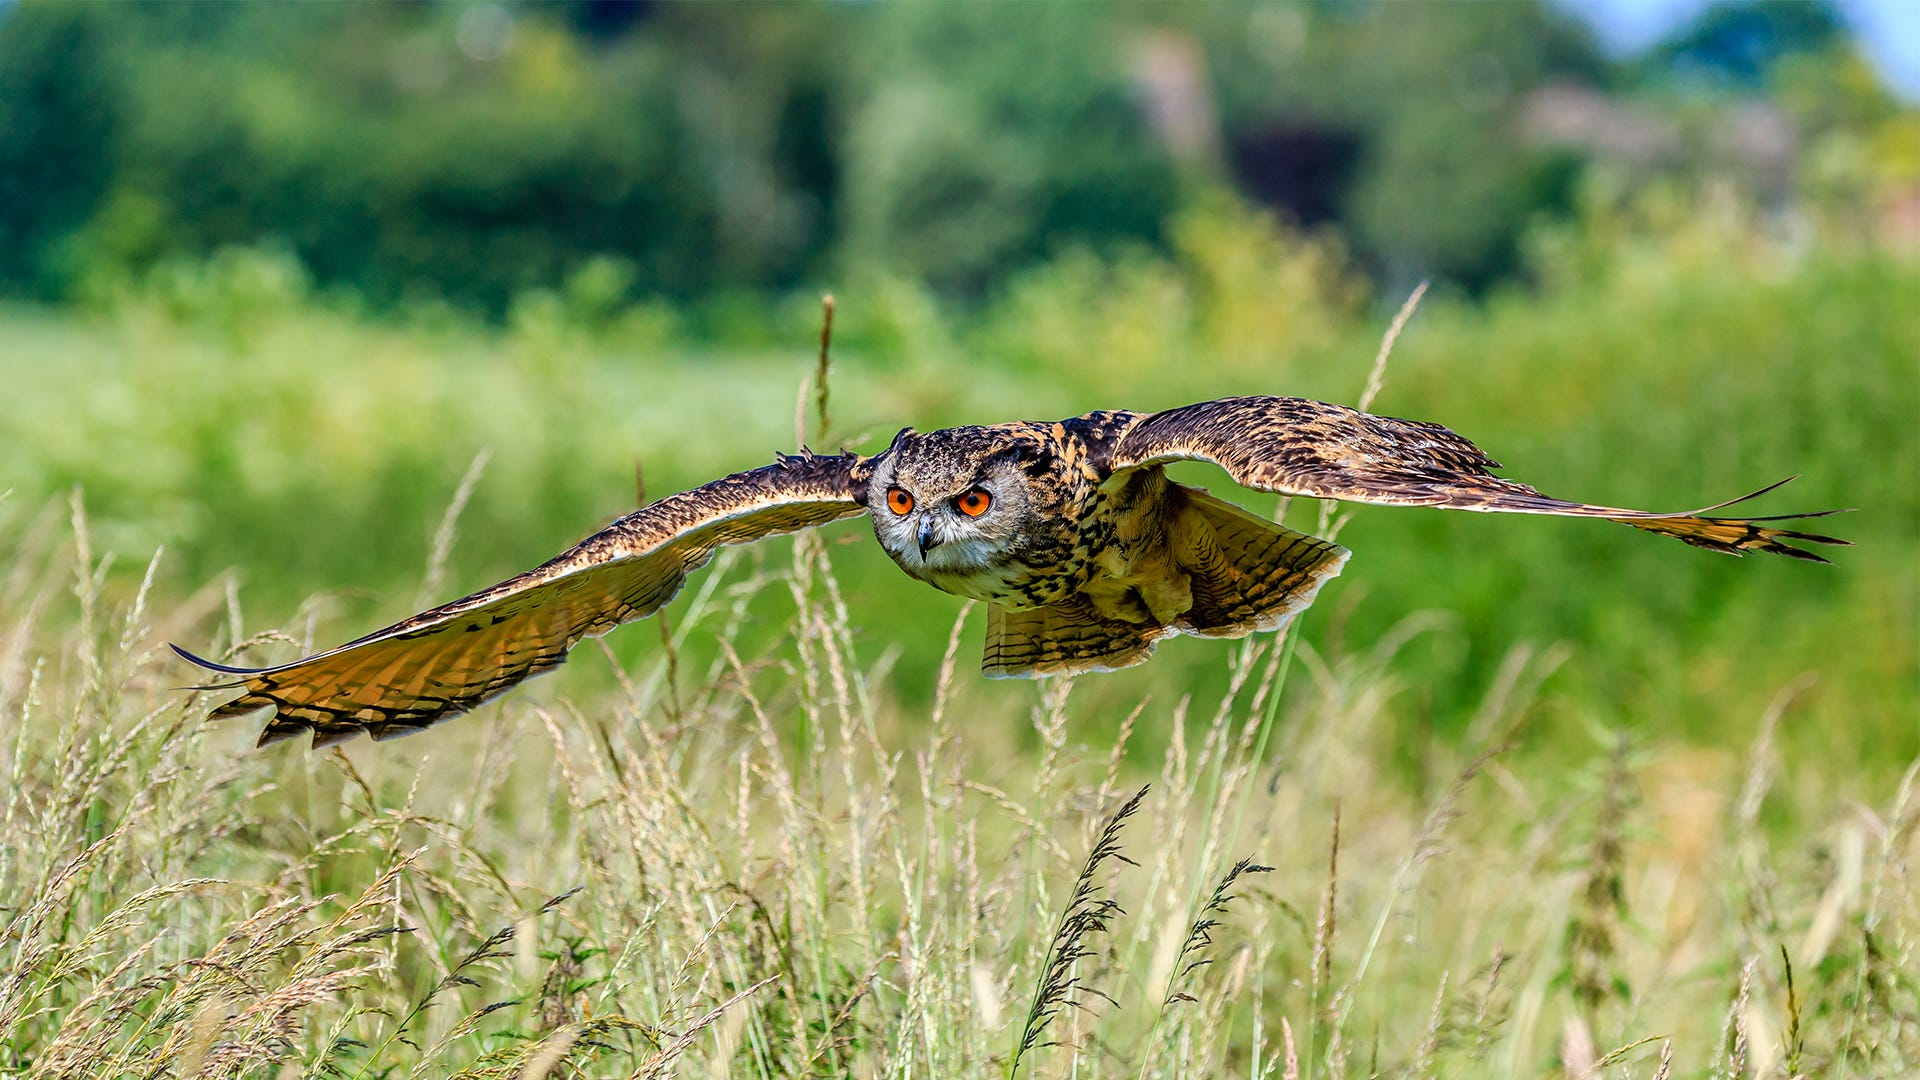 Attracting Owls to Reduce Rodent Populations